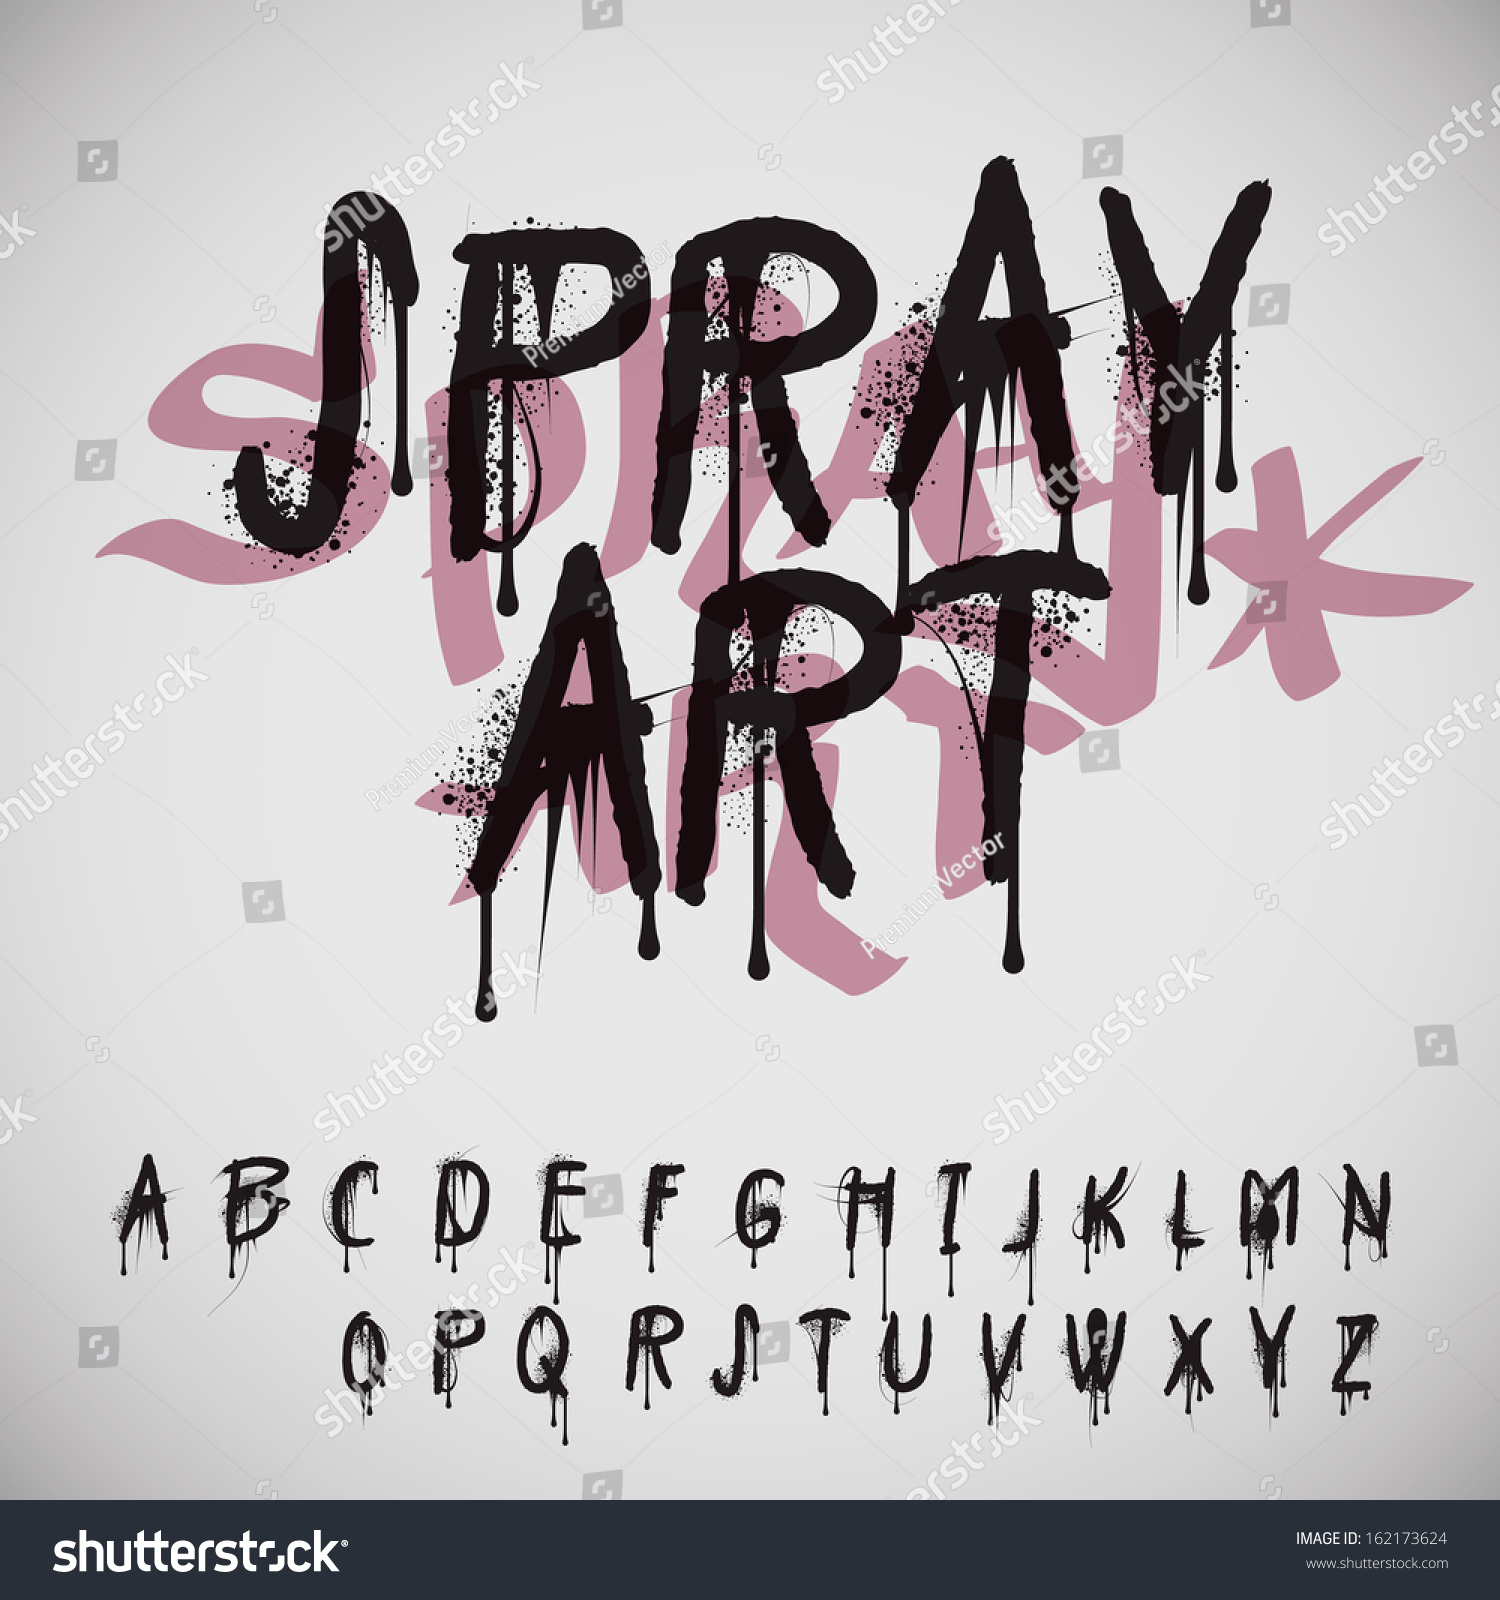 Graffiti Splash Alphabet Vector Image 162173624